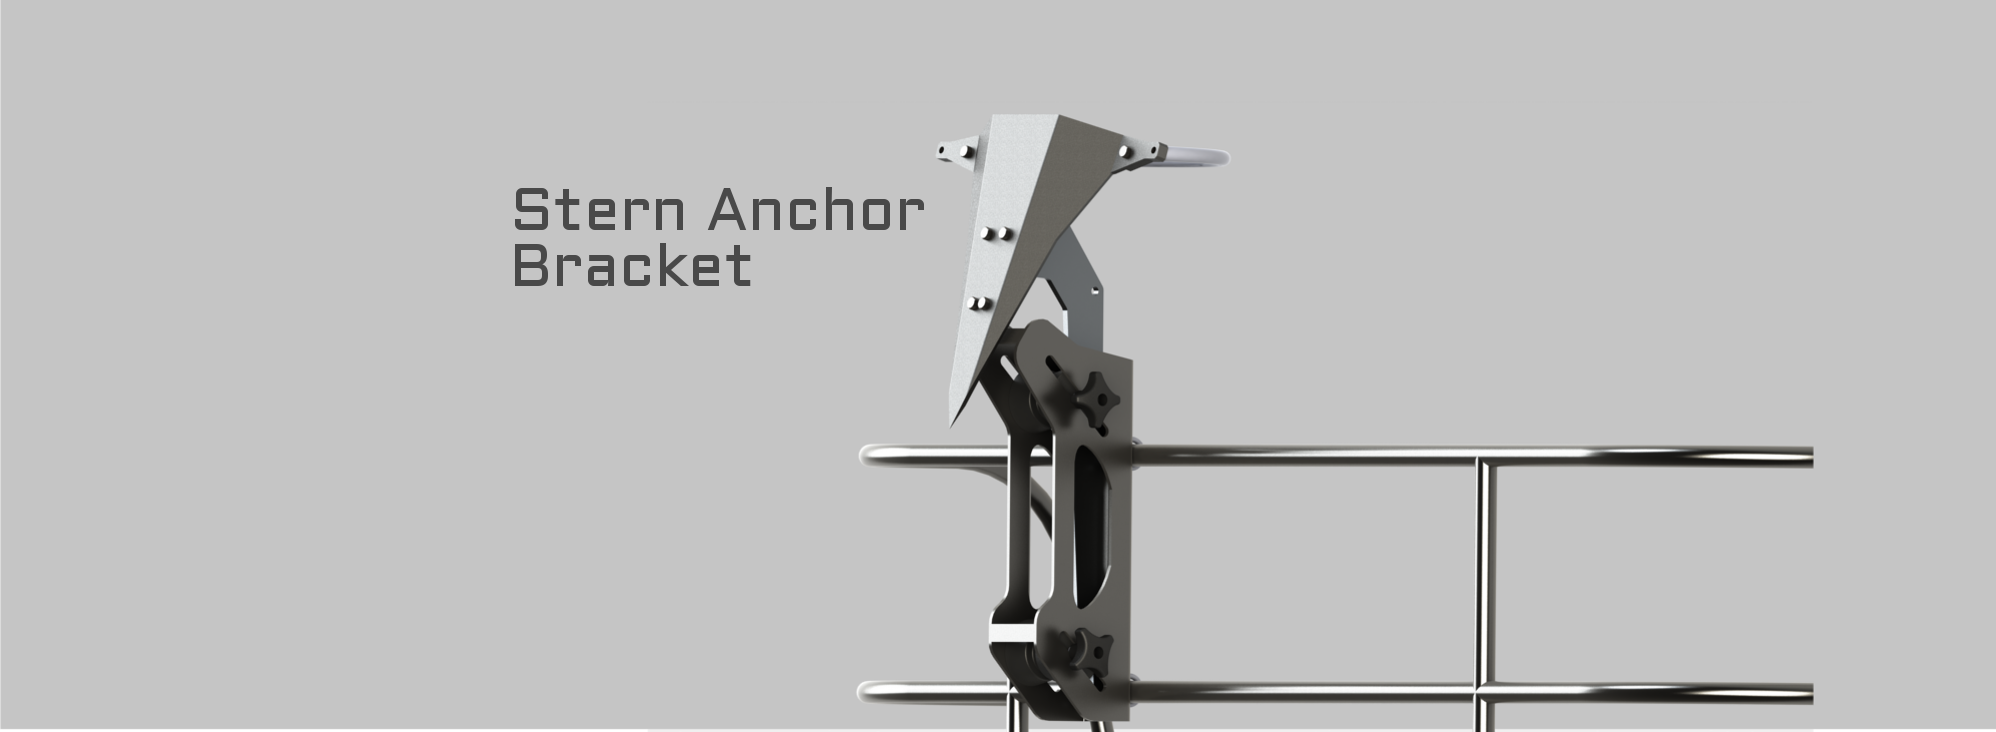 SLIDER IMAGE ONE SIDE VIEW ANCHOR BRACKET